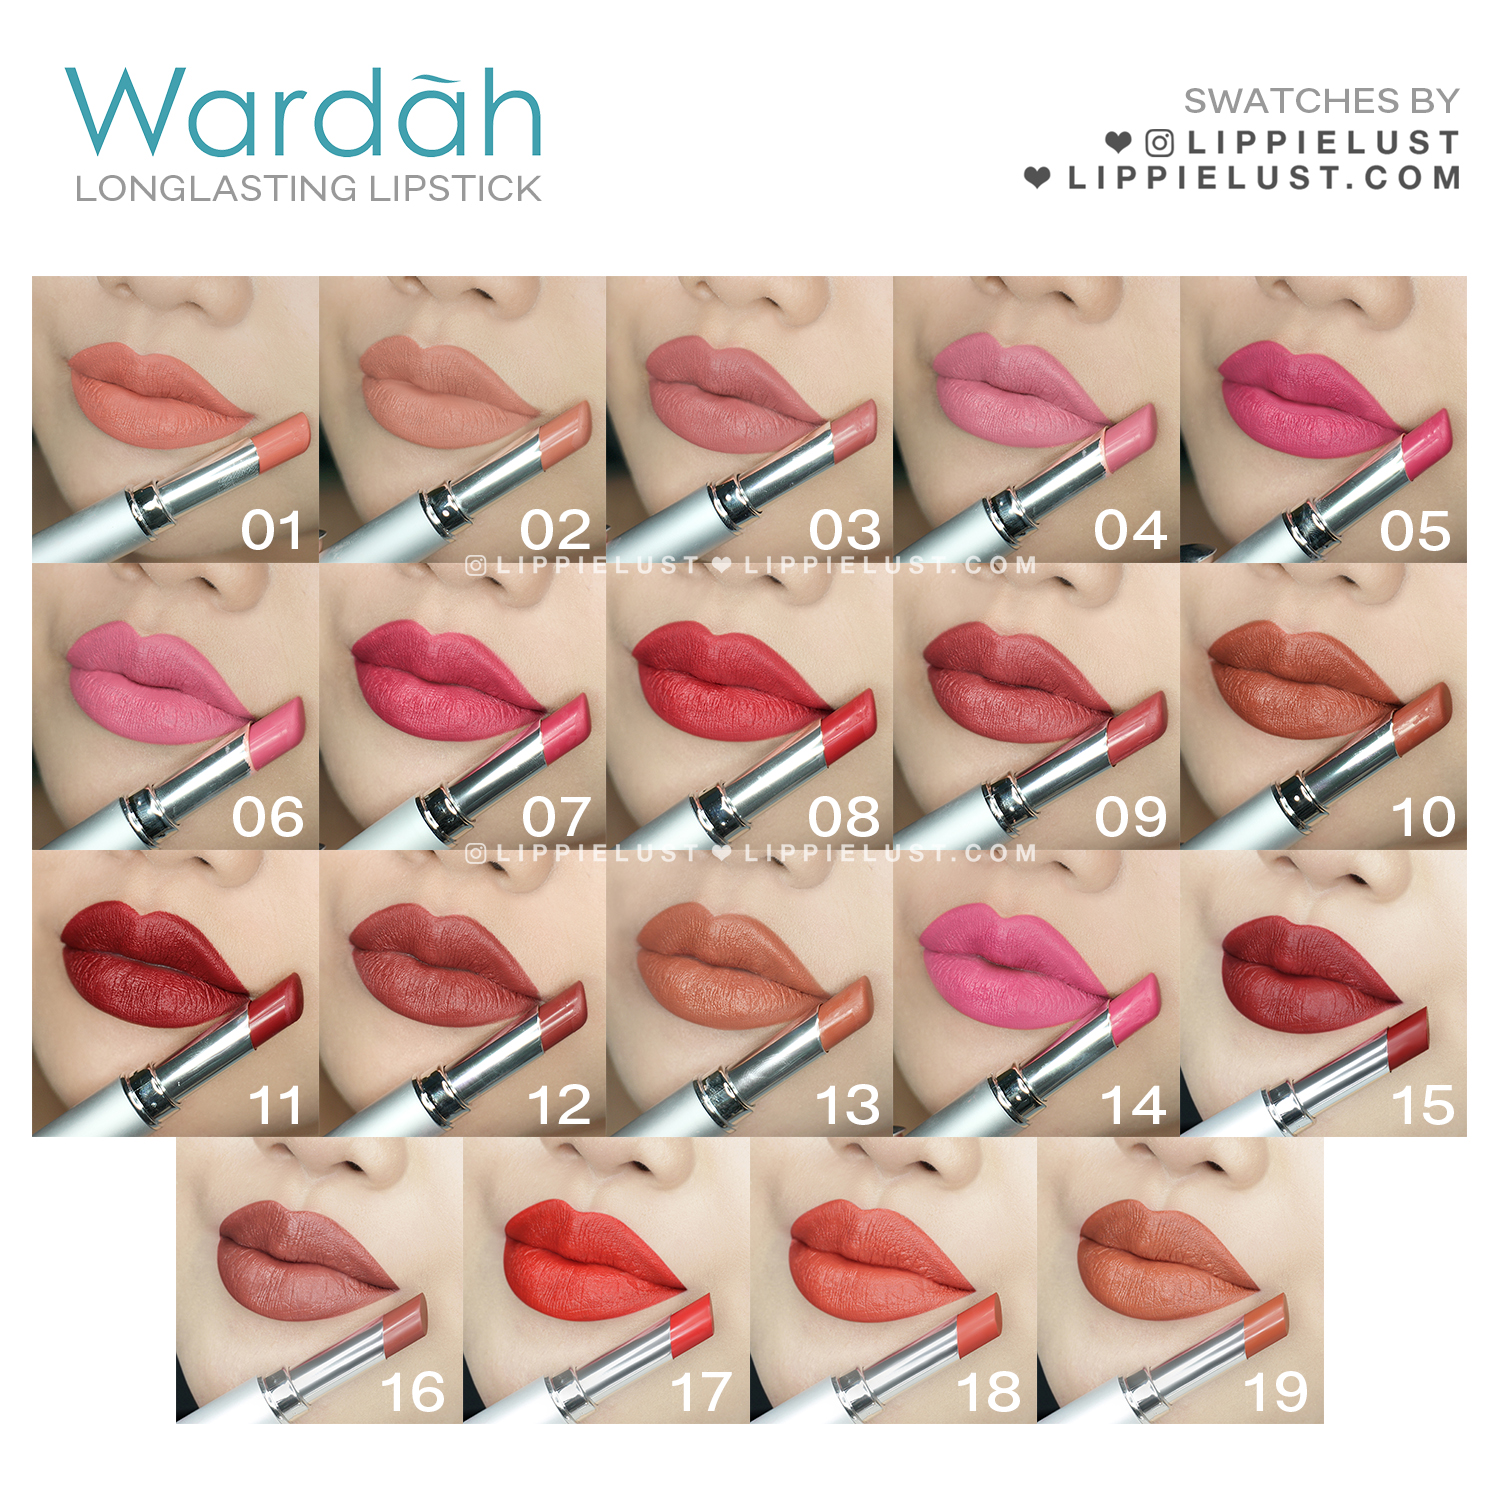 [SWATCH & REVIEW] Wardah Beauty Long Lasting Lipstick